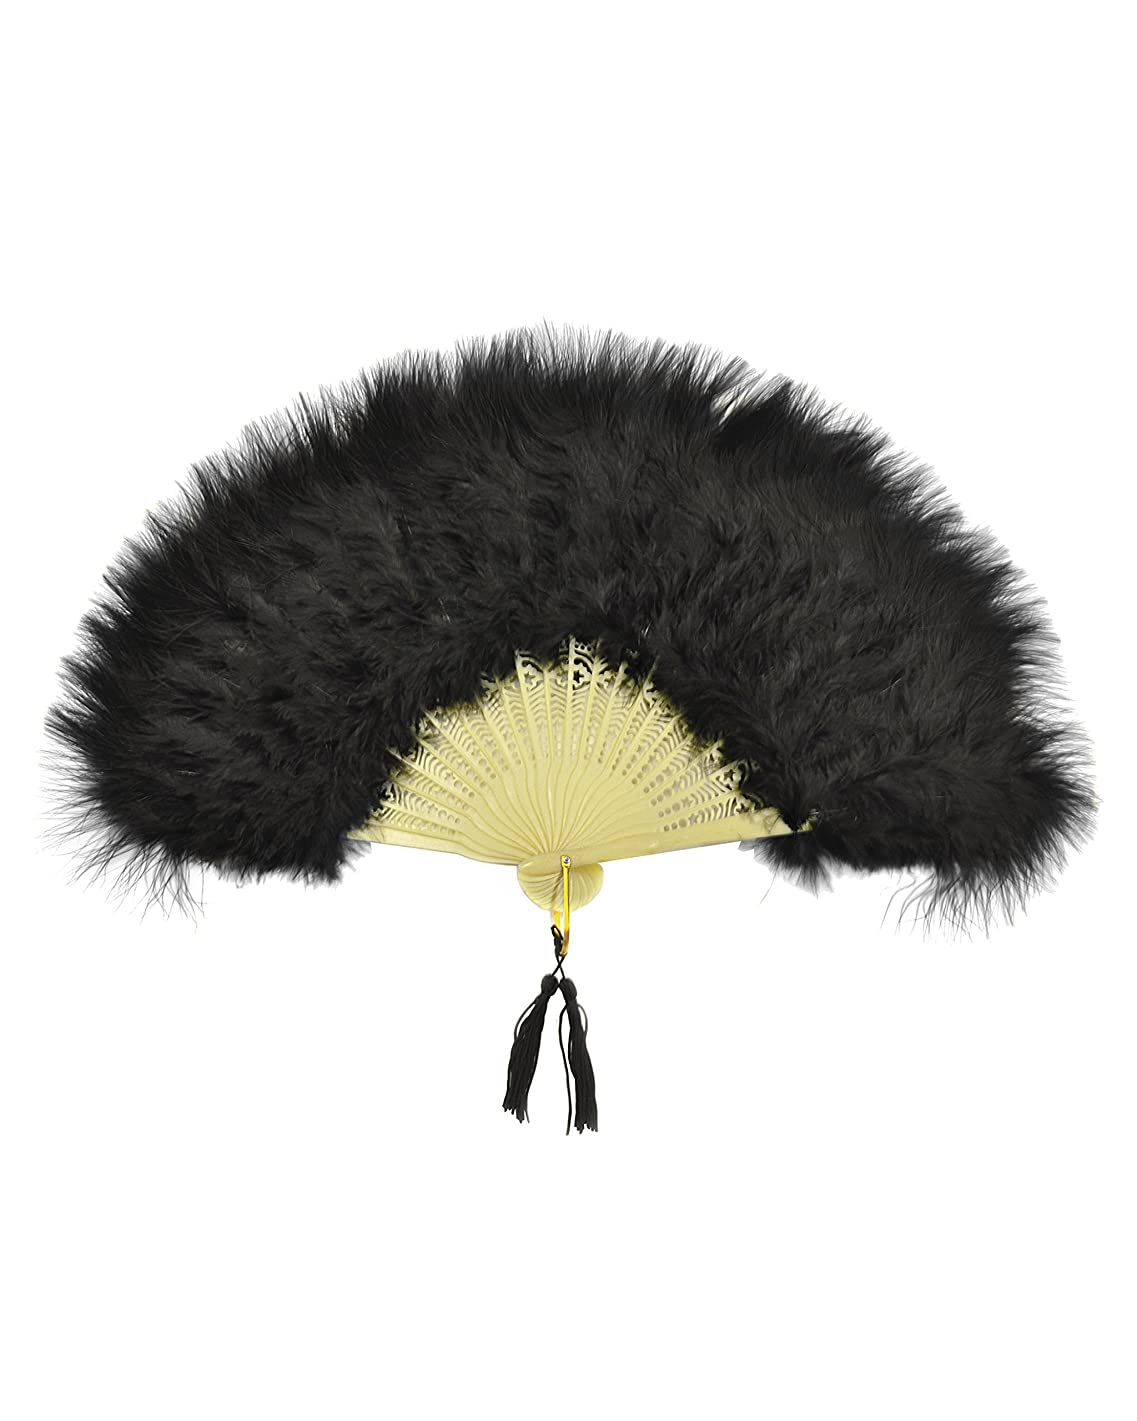 12 Inch Black Fold Out Marabou Feather Fan Classy Costume Accessory